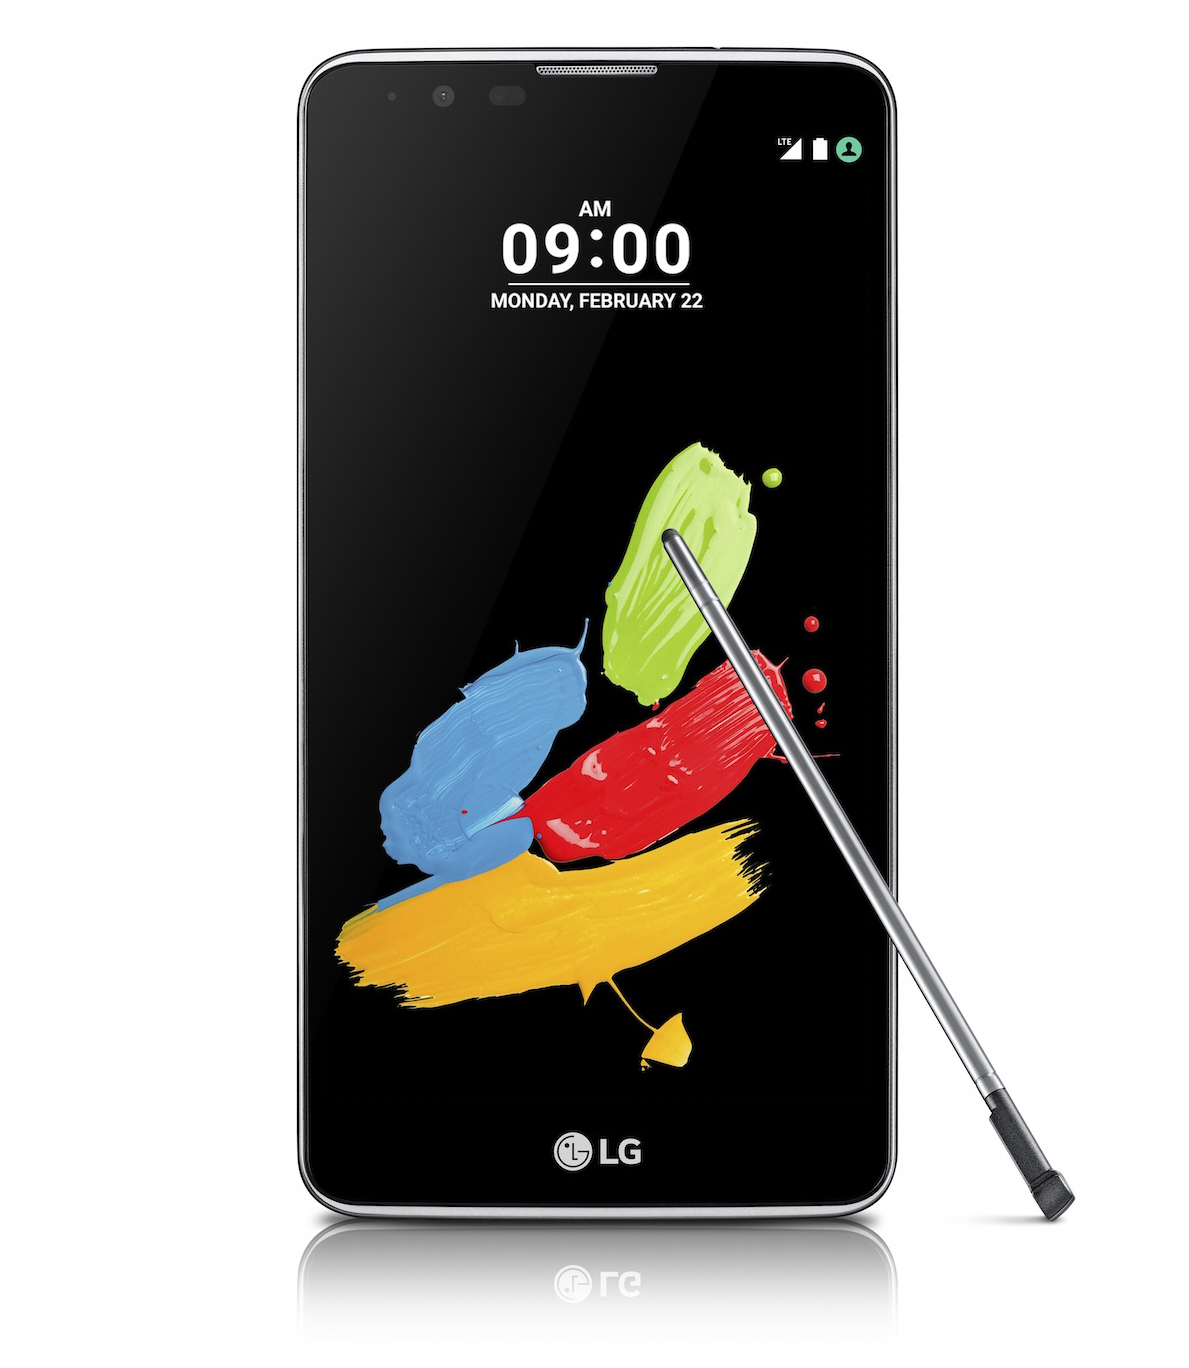 LG brings a smarter pen experience to the Stylus 2